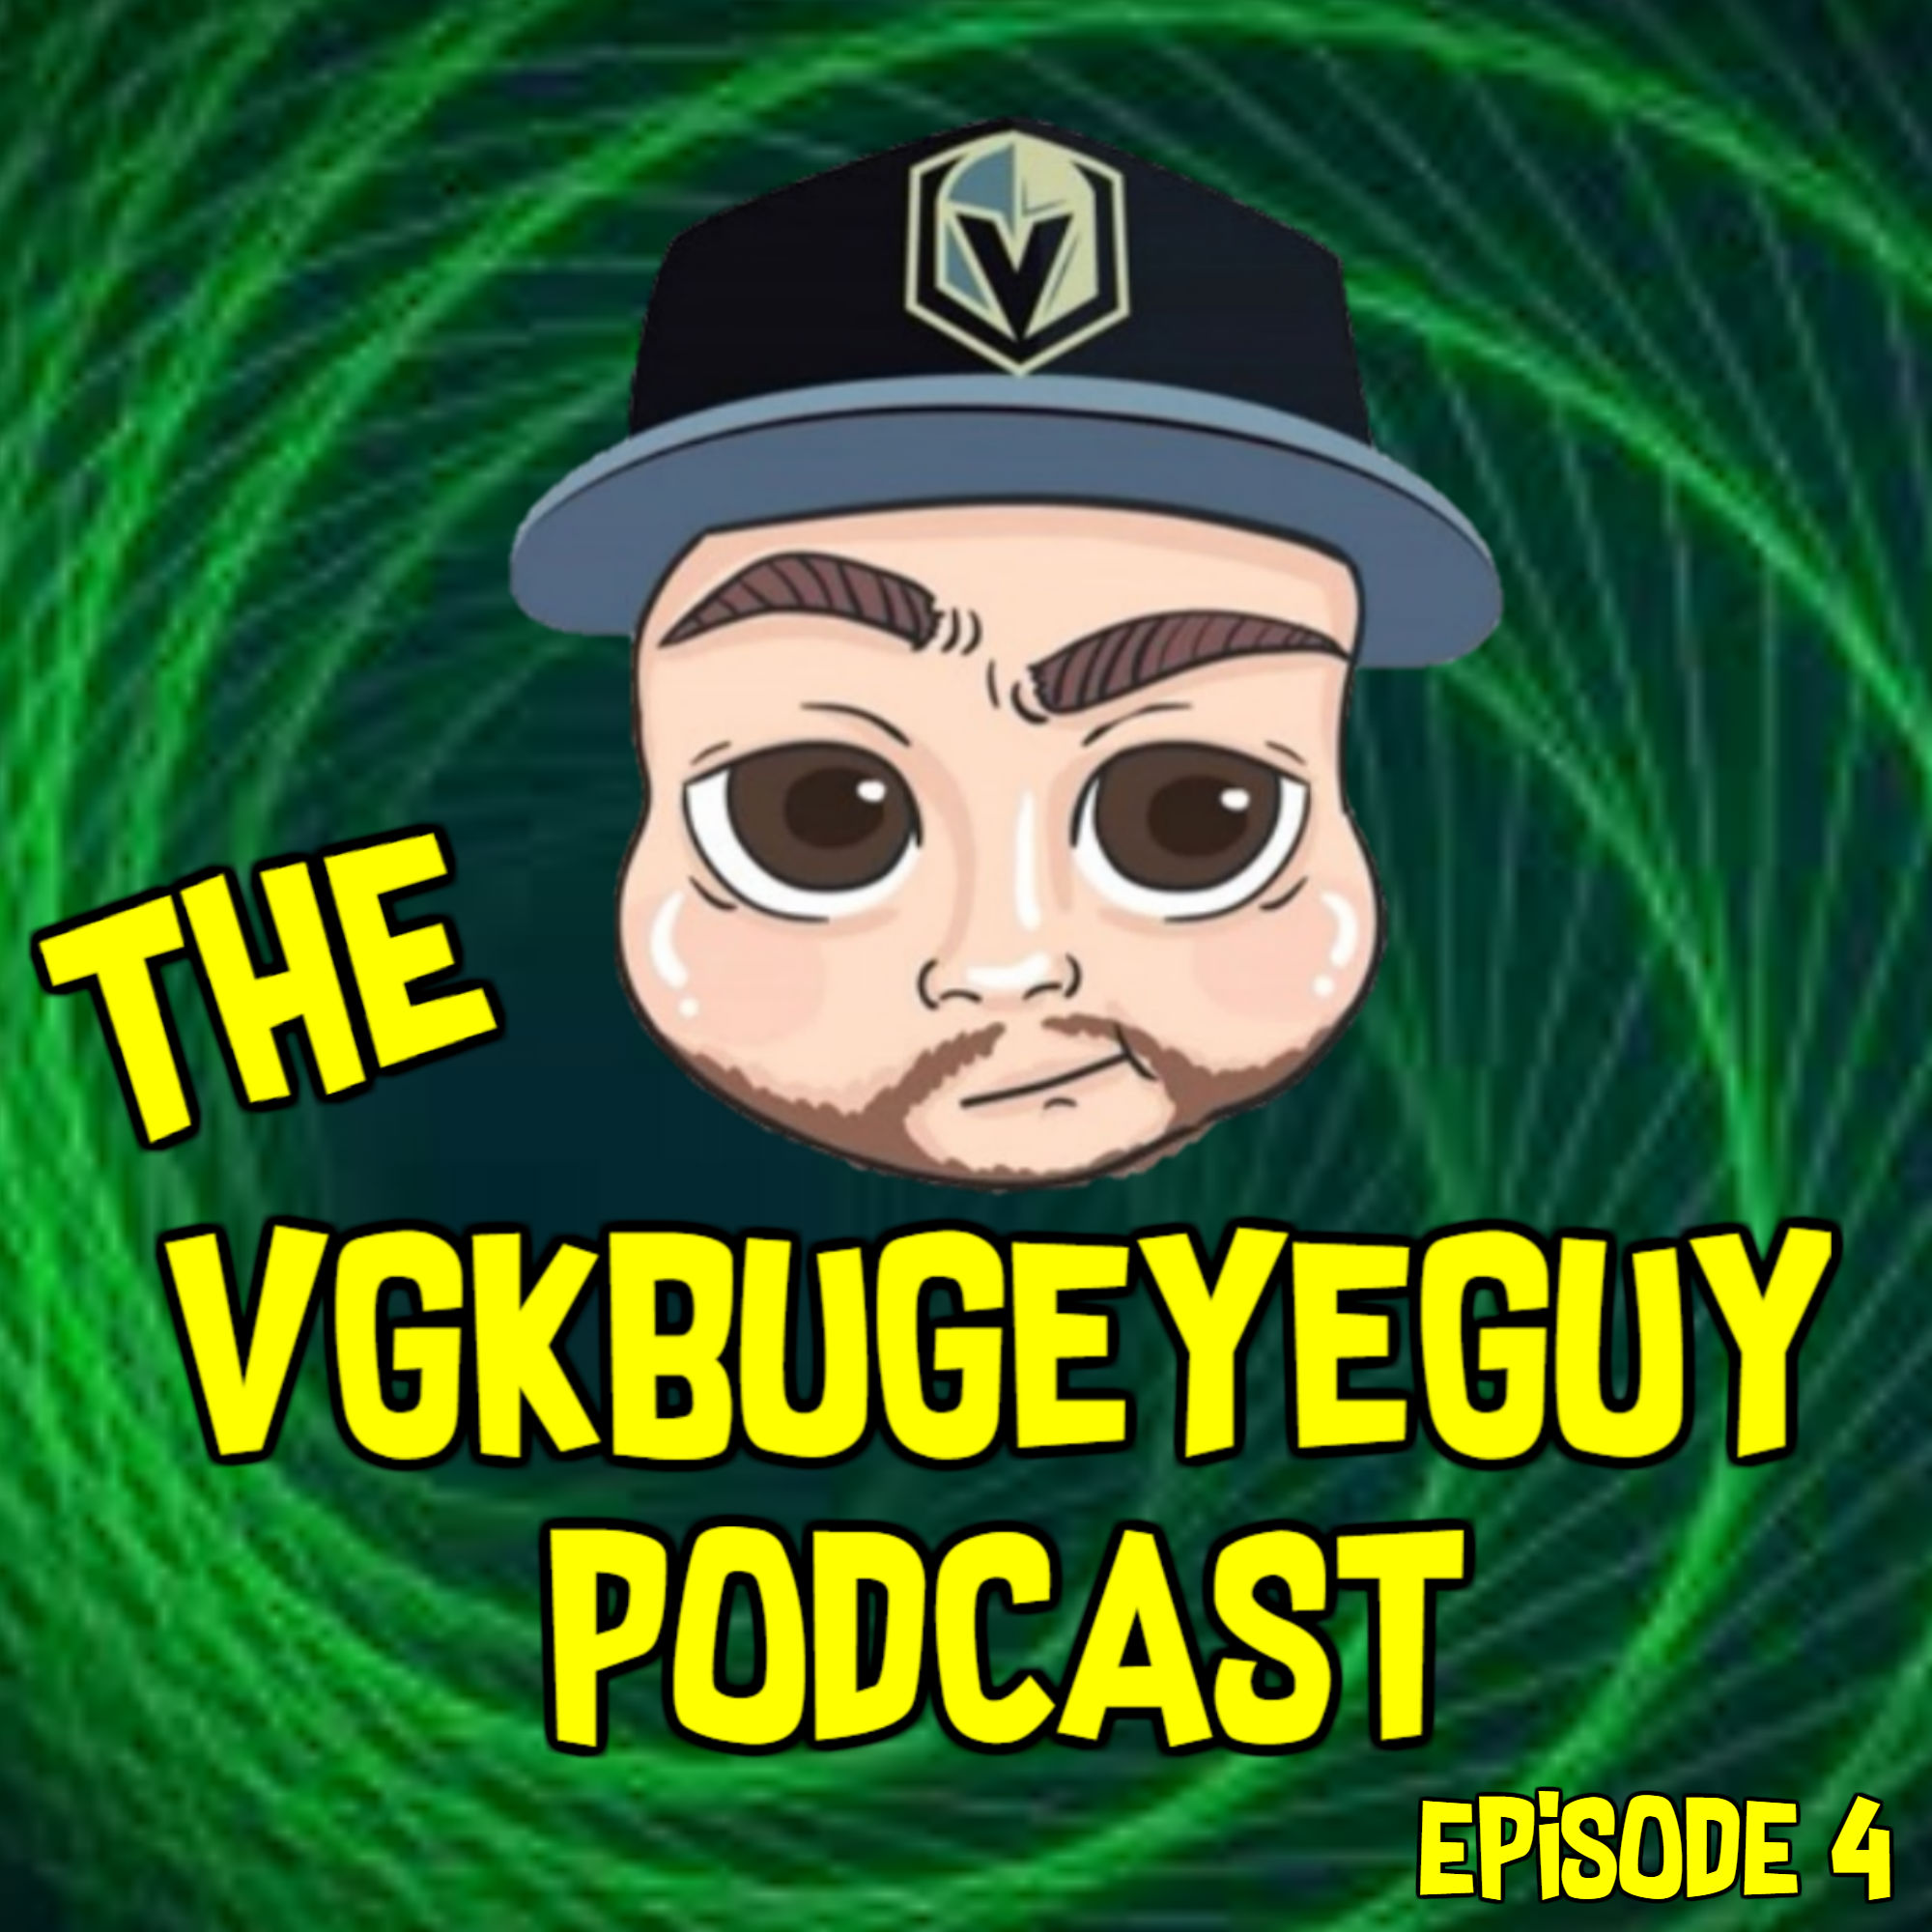 The VGKbugeyeGuy Podcast Episode 4